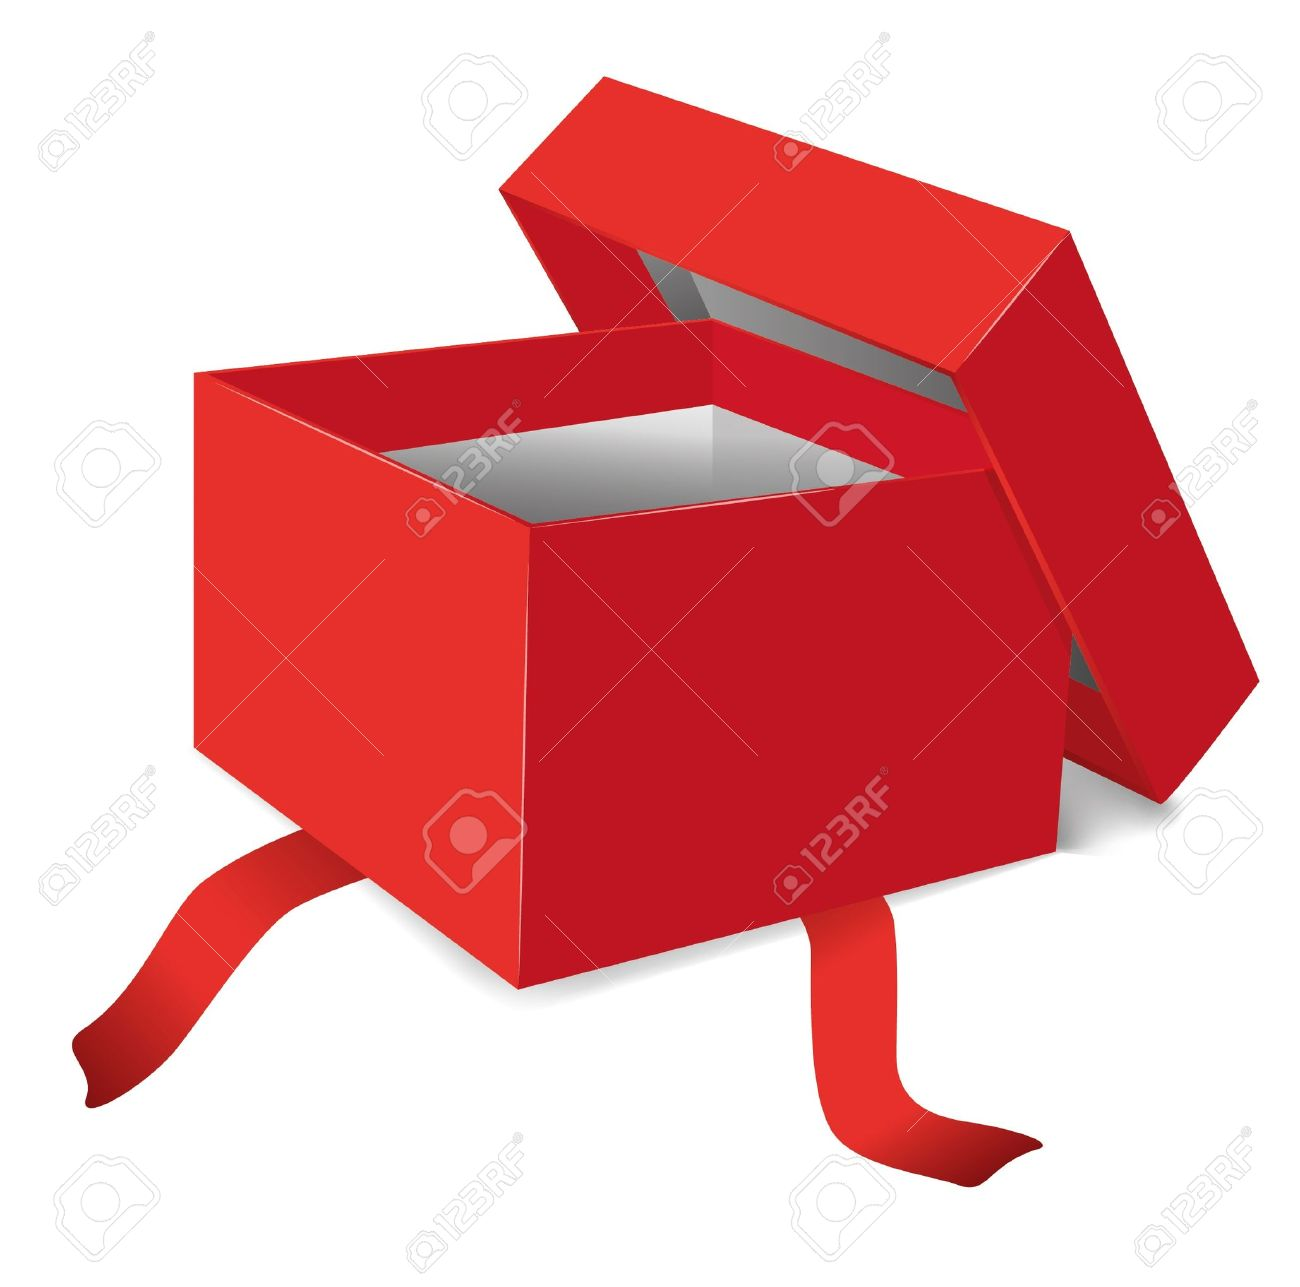 open present clipart. red opened gift box vector illustration stock 9844574 open present clipart